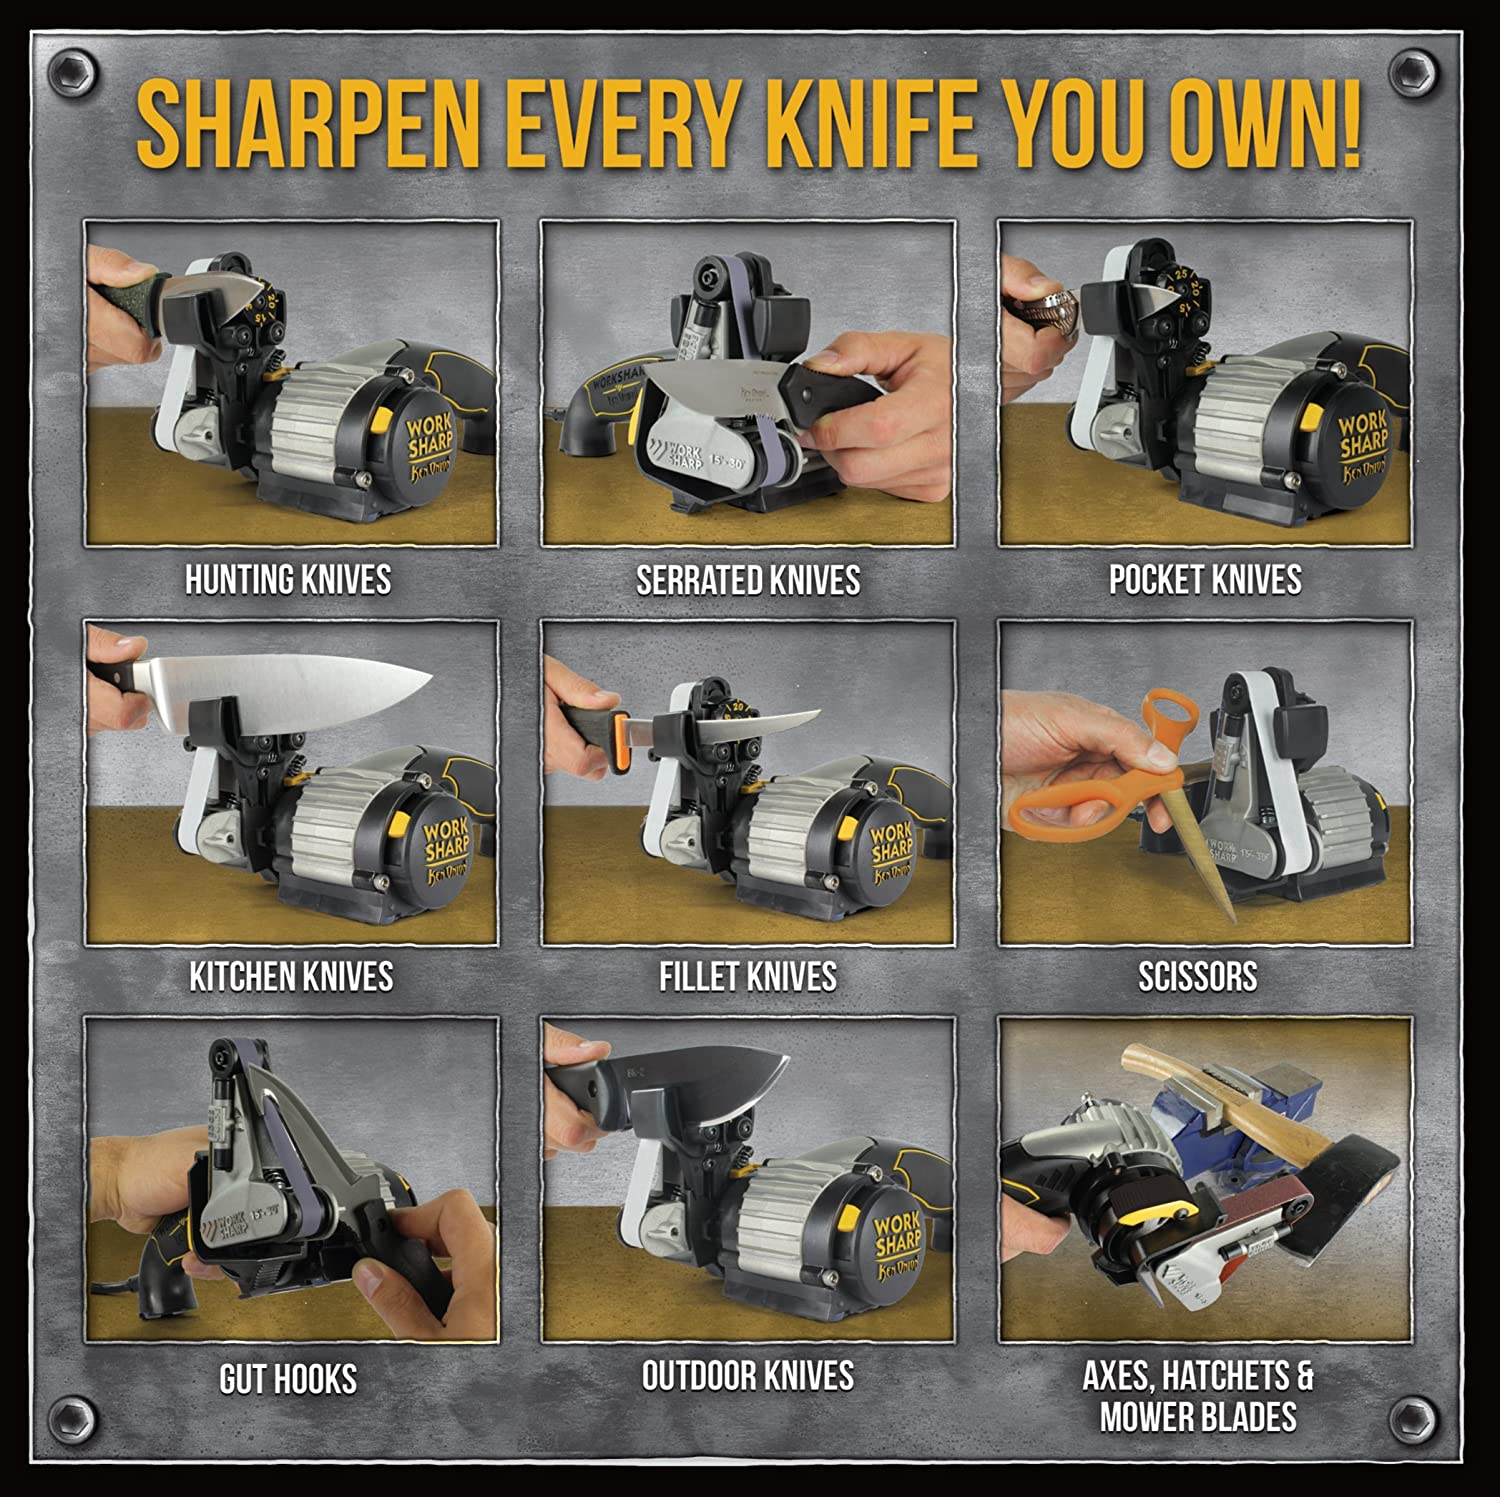 Work Sharp Ken Onion Edition Sharpener how to use